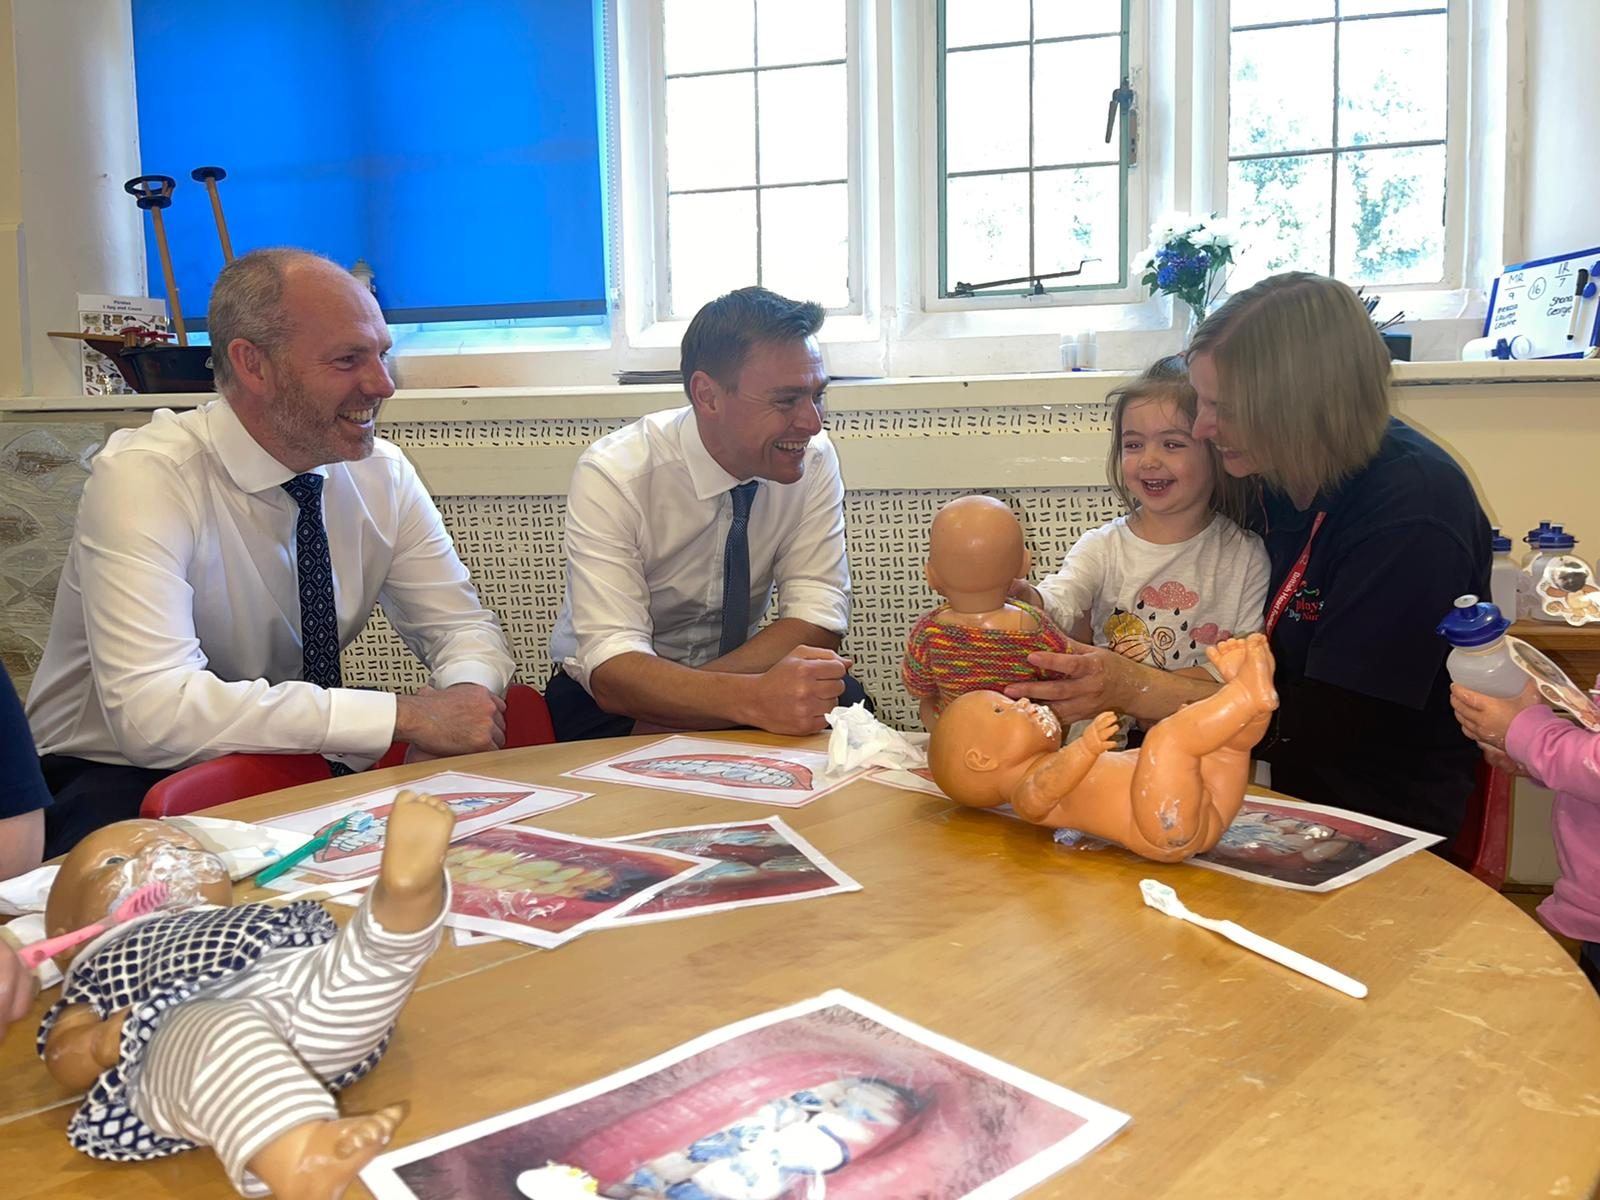 North Swindon MP Justin Tomlinson Welcomes Education Minister To Swindon